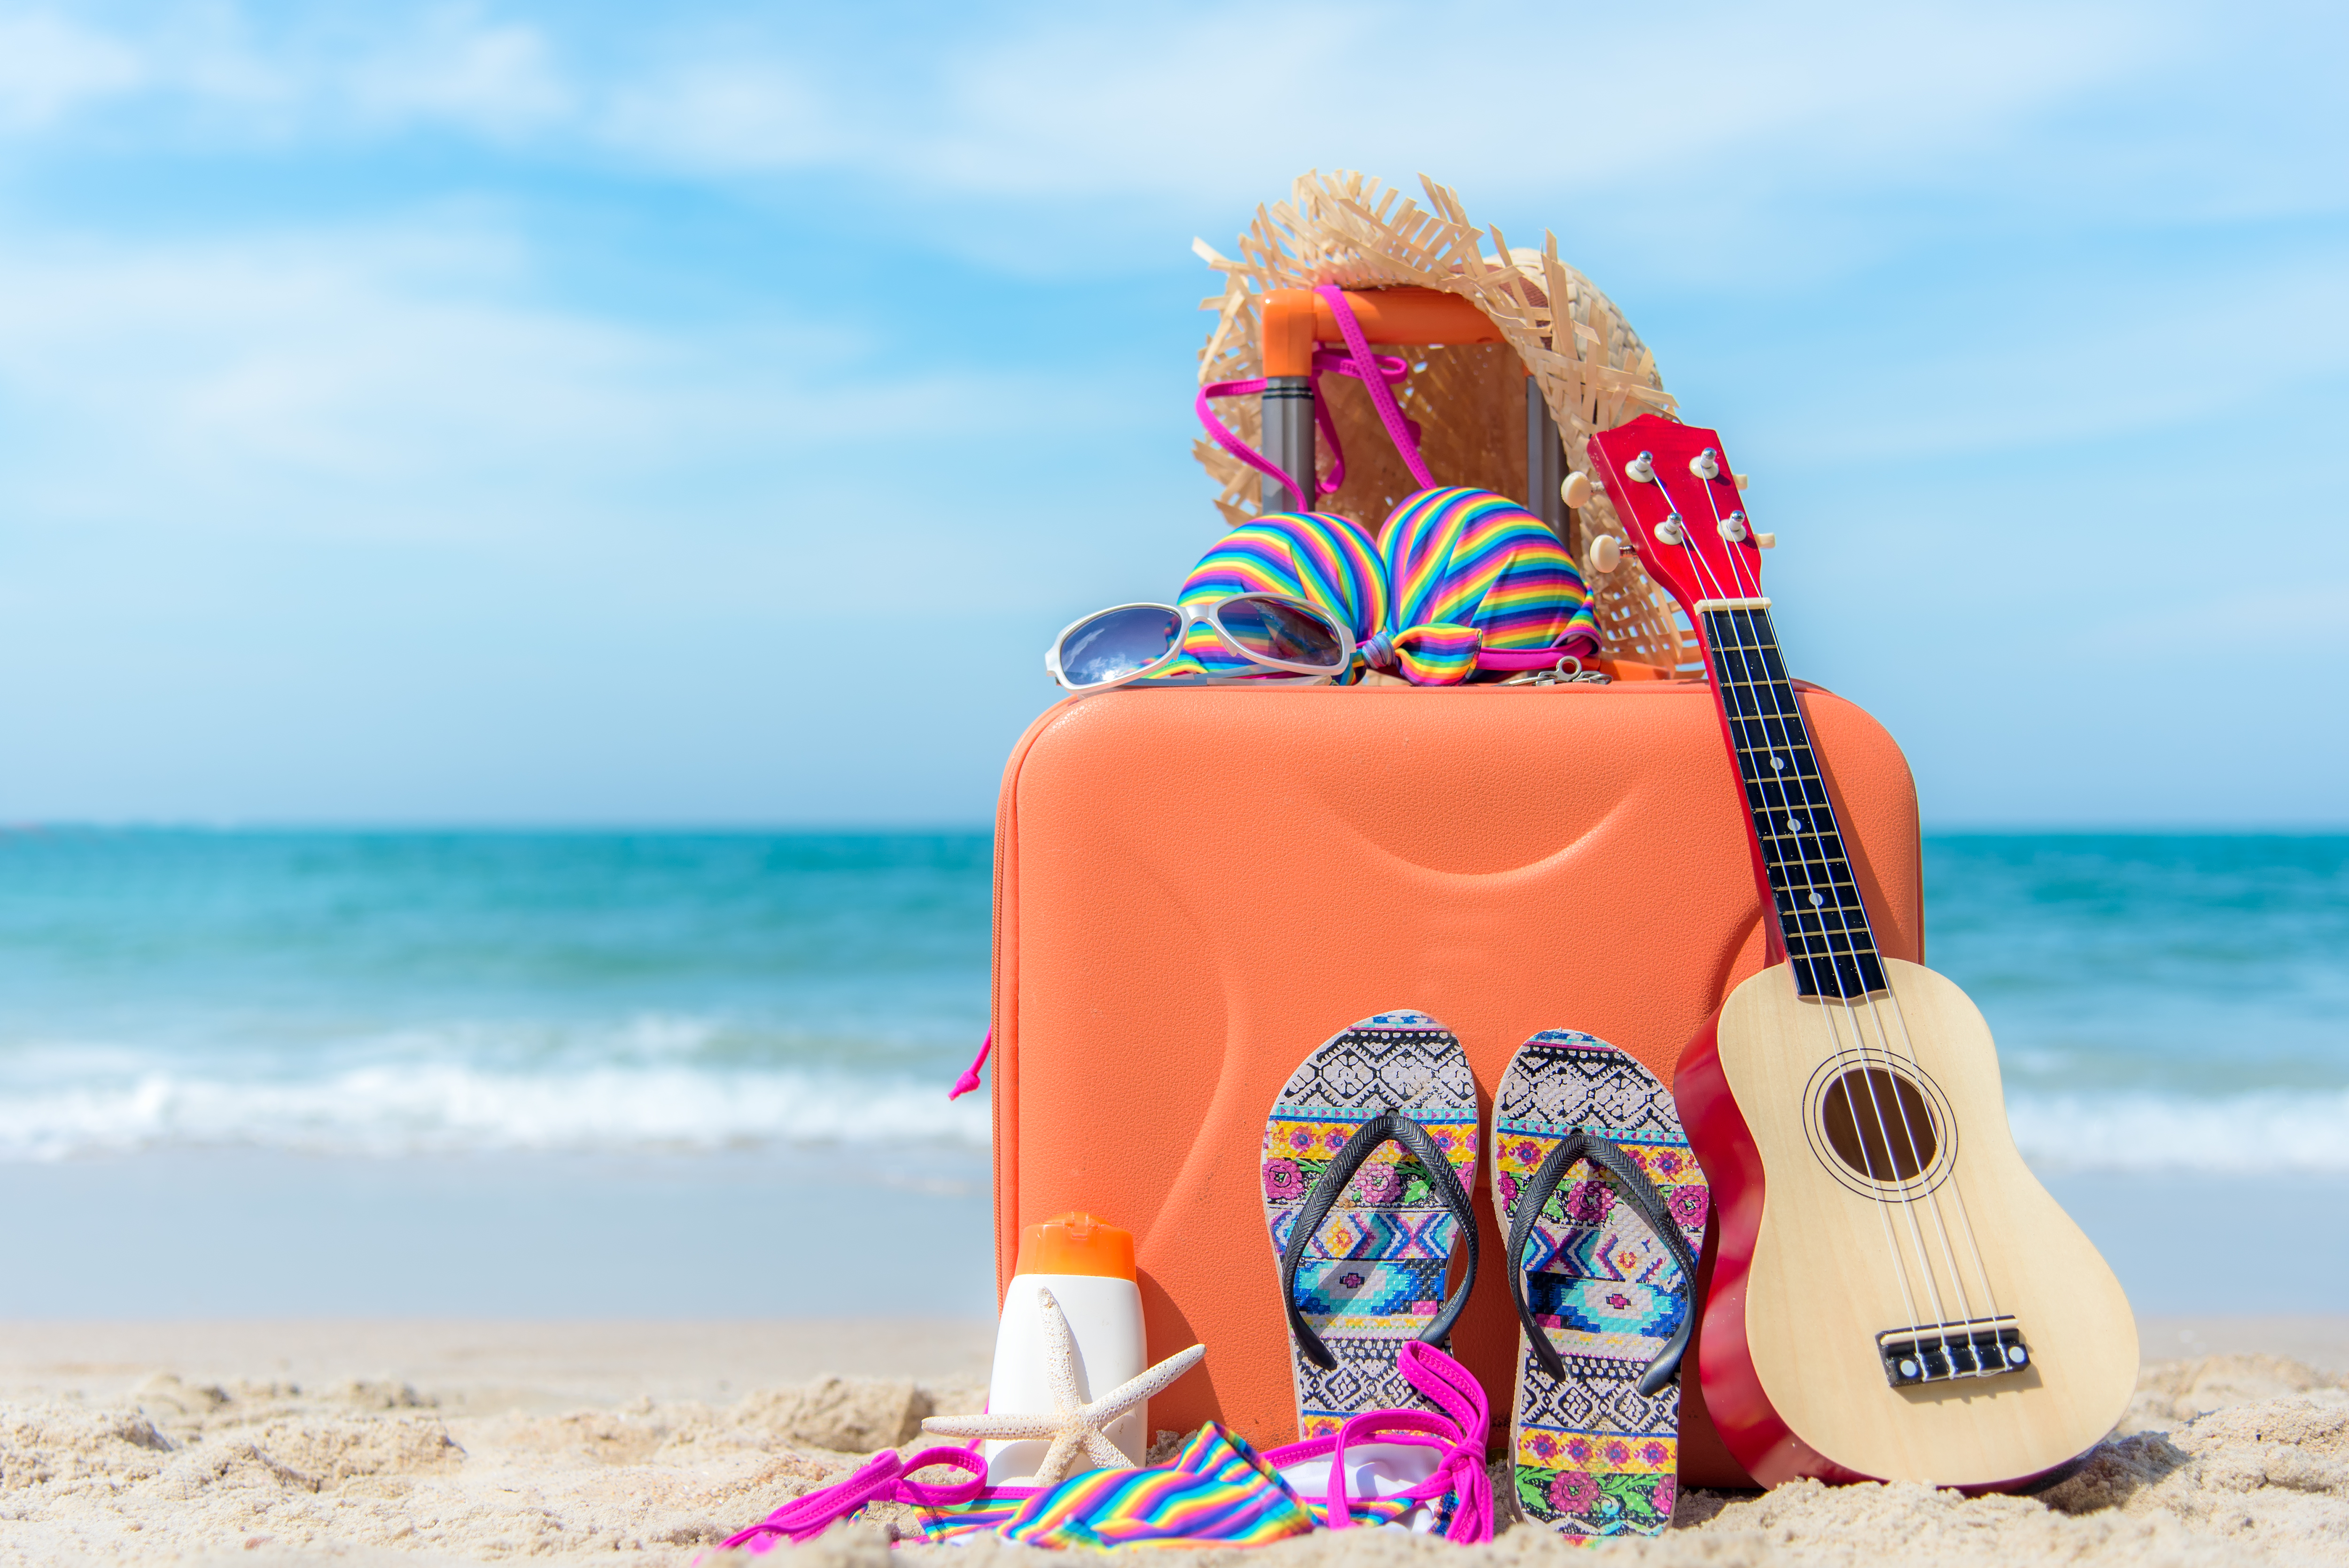 Summer traveling with old suitcase and Fashion woman swimsuit Bikini,starfish, sun glasses, hat. Travel in the holiday, sunset beach background.  Summer and Travel Concept.